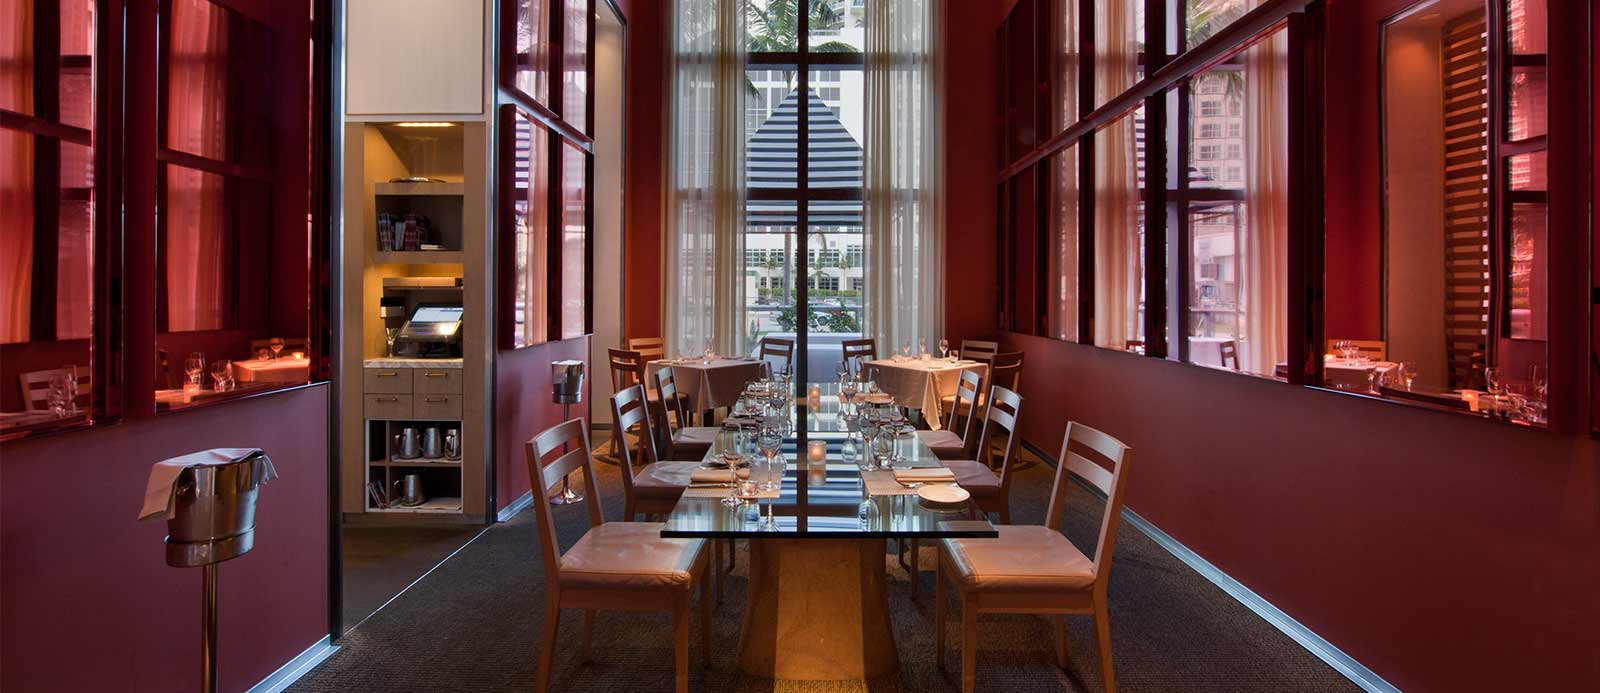 Daniel boulud chef and restaurateur mirror room for Best private dining rooms miami